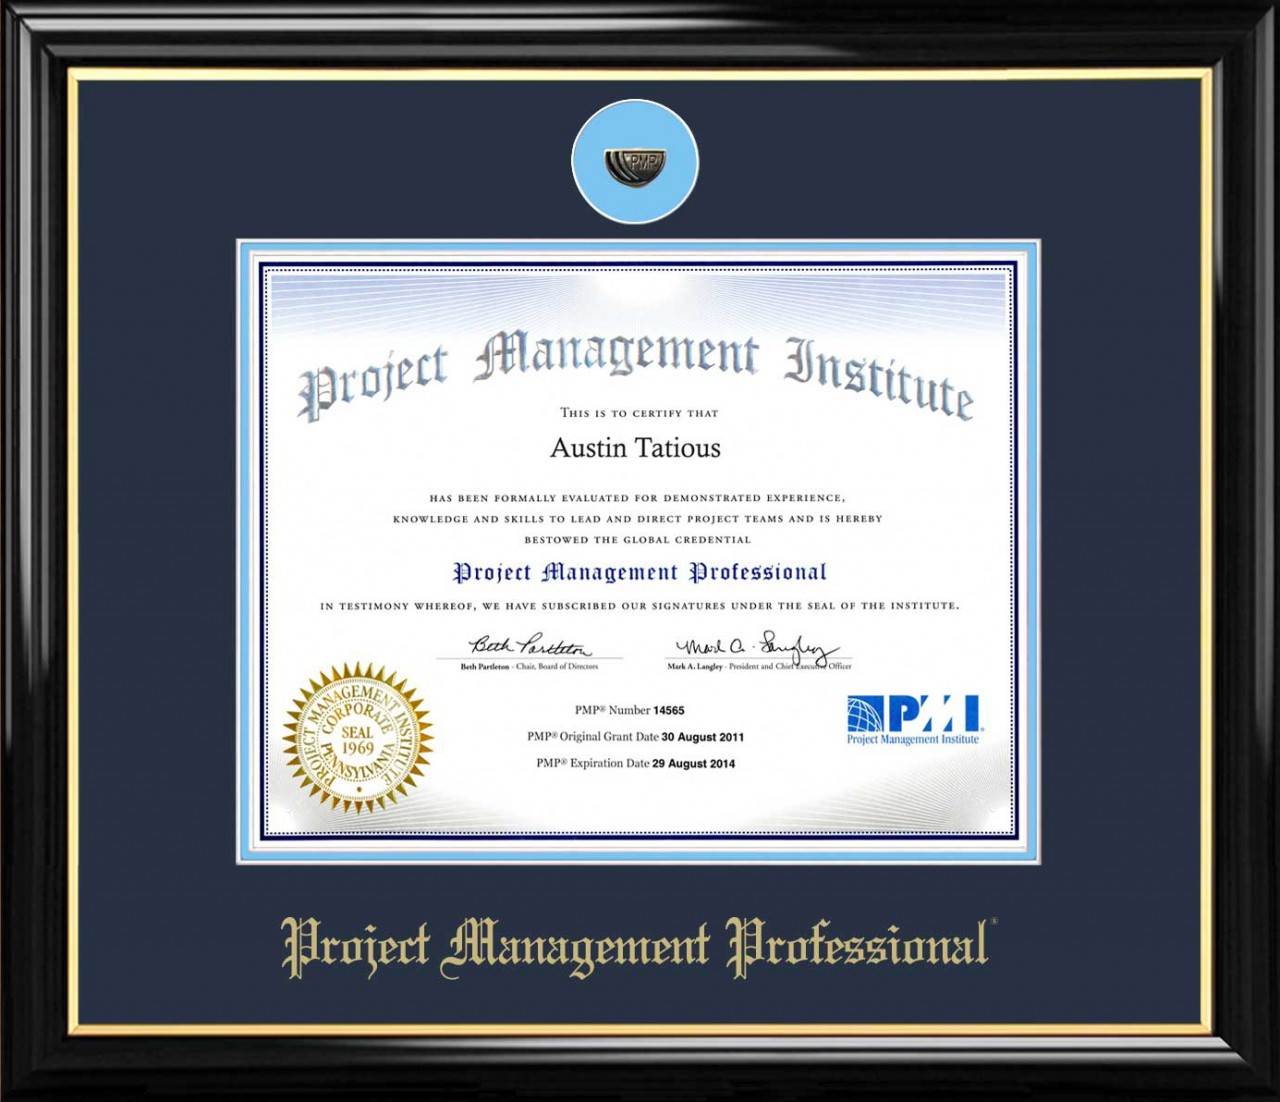 Pmp 174 Certificate Frame Black With Navy Mat Amp Lapel Pin Opening